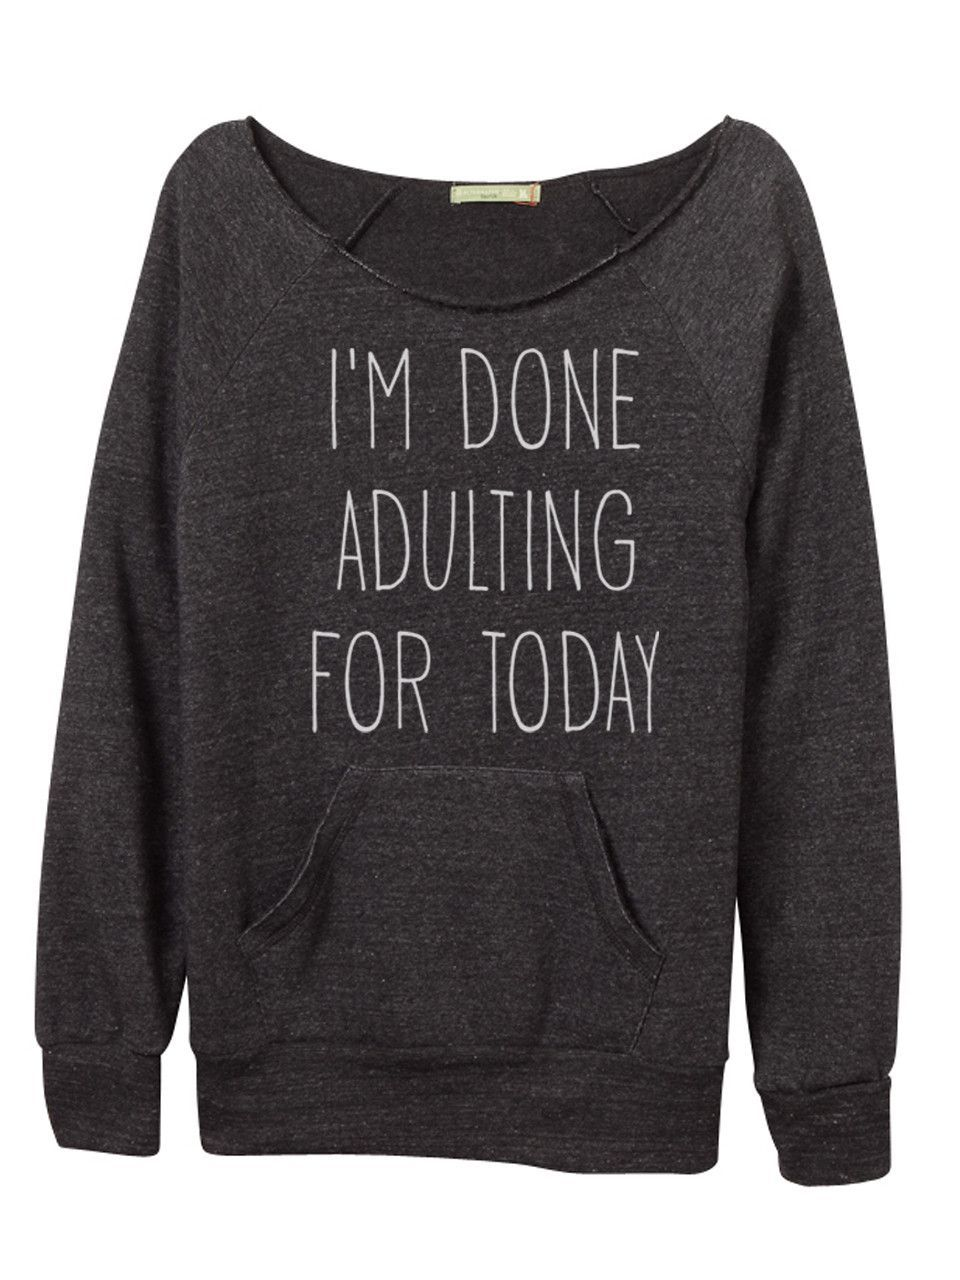 We ALL feel this way, like daily, right?  Pair with leggings and boots and you're good to go.